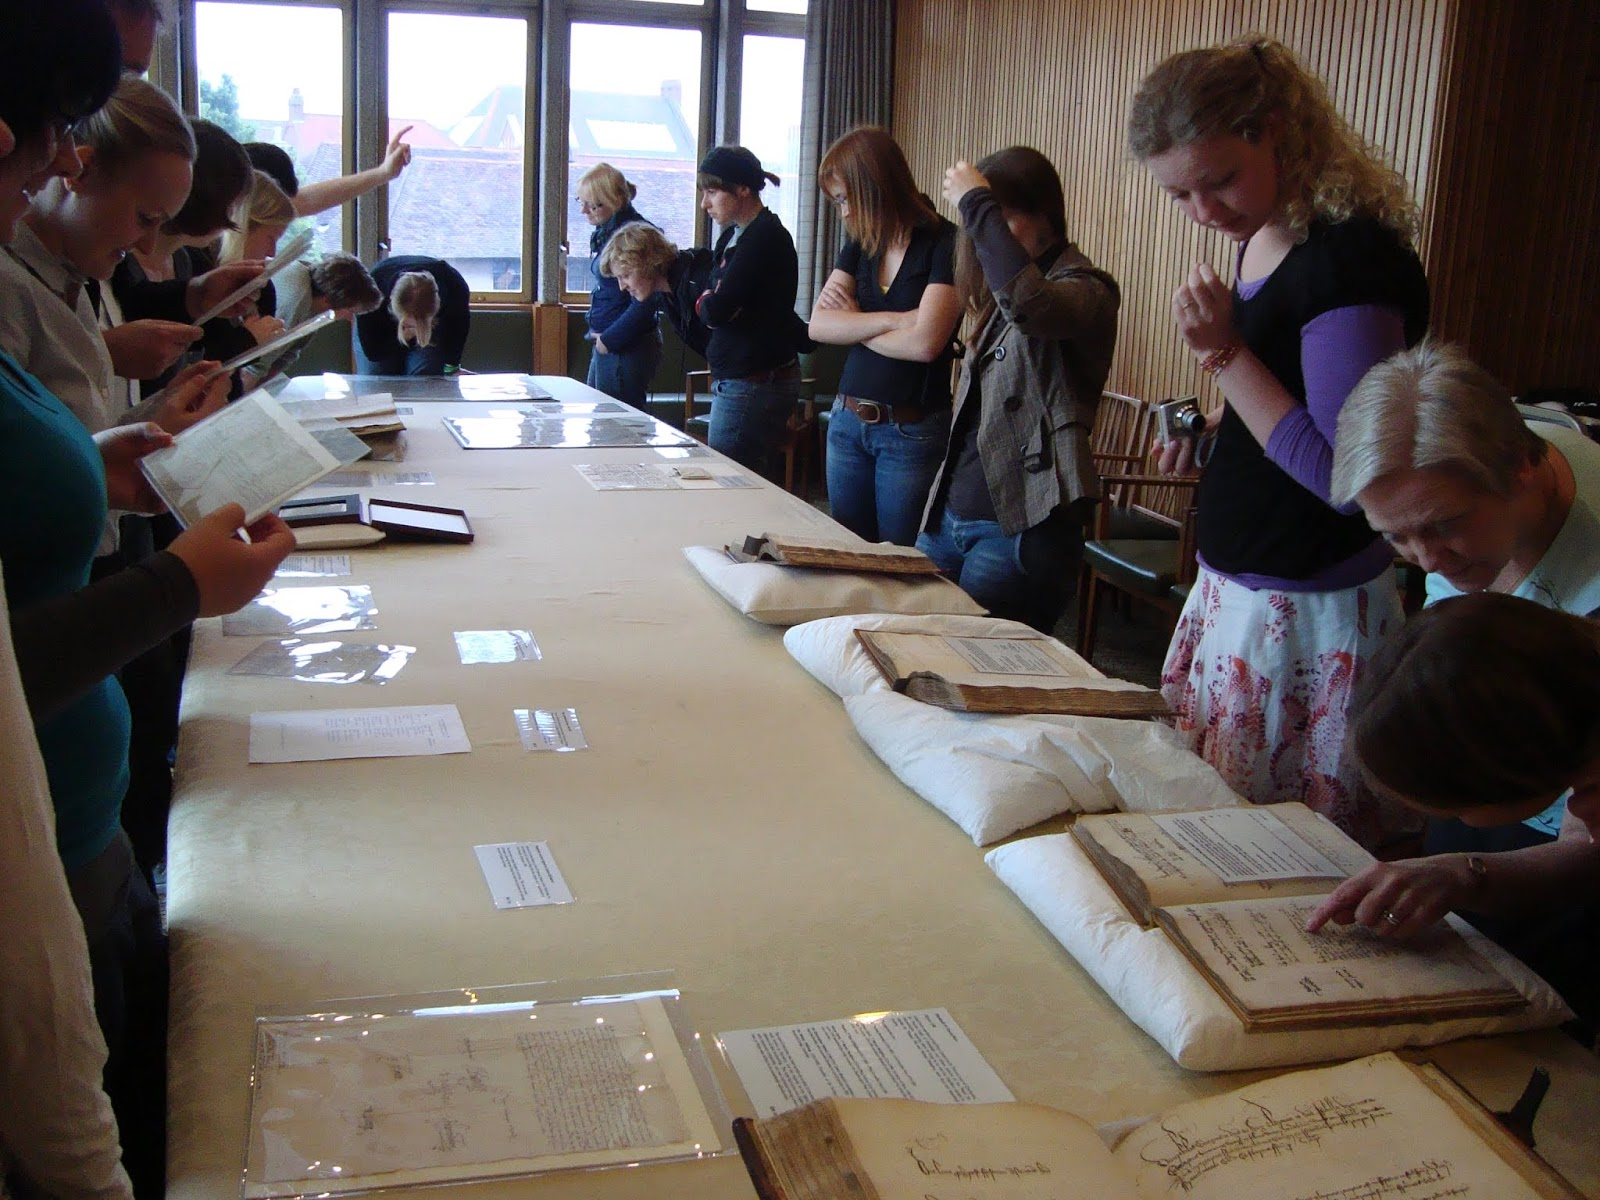 My study group inspecting shakespearean documents